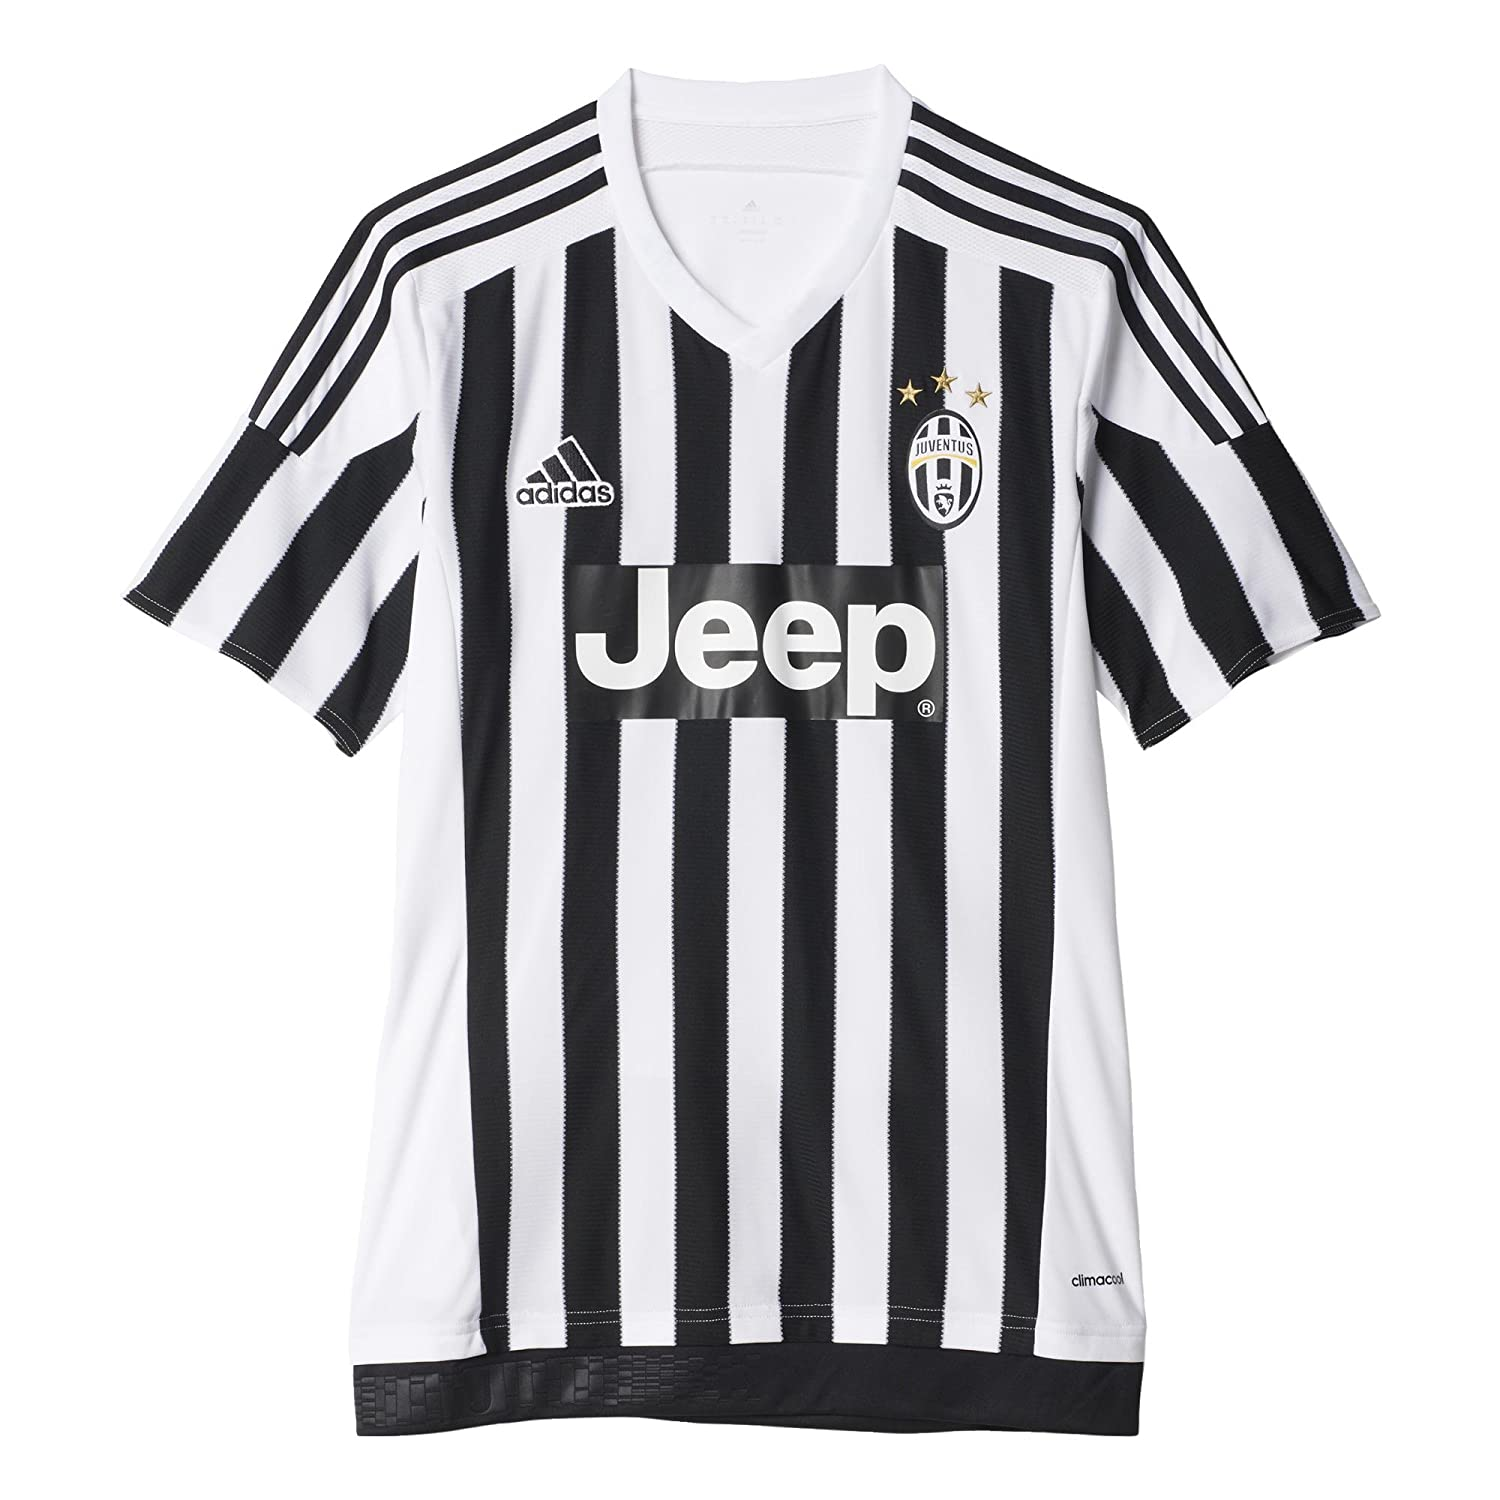 online store 779f4 d6484 adidas AA0336 Juventus FC Home Jersey